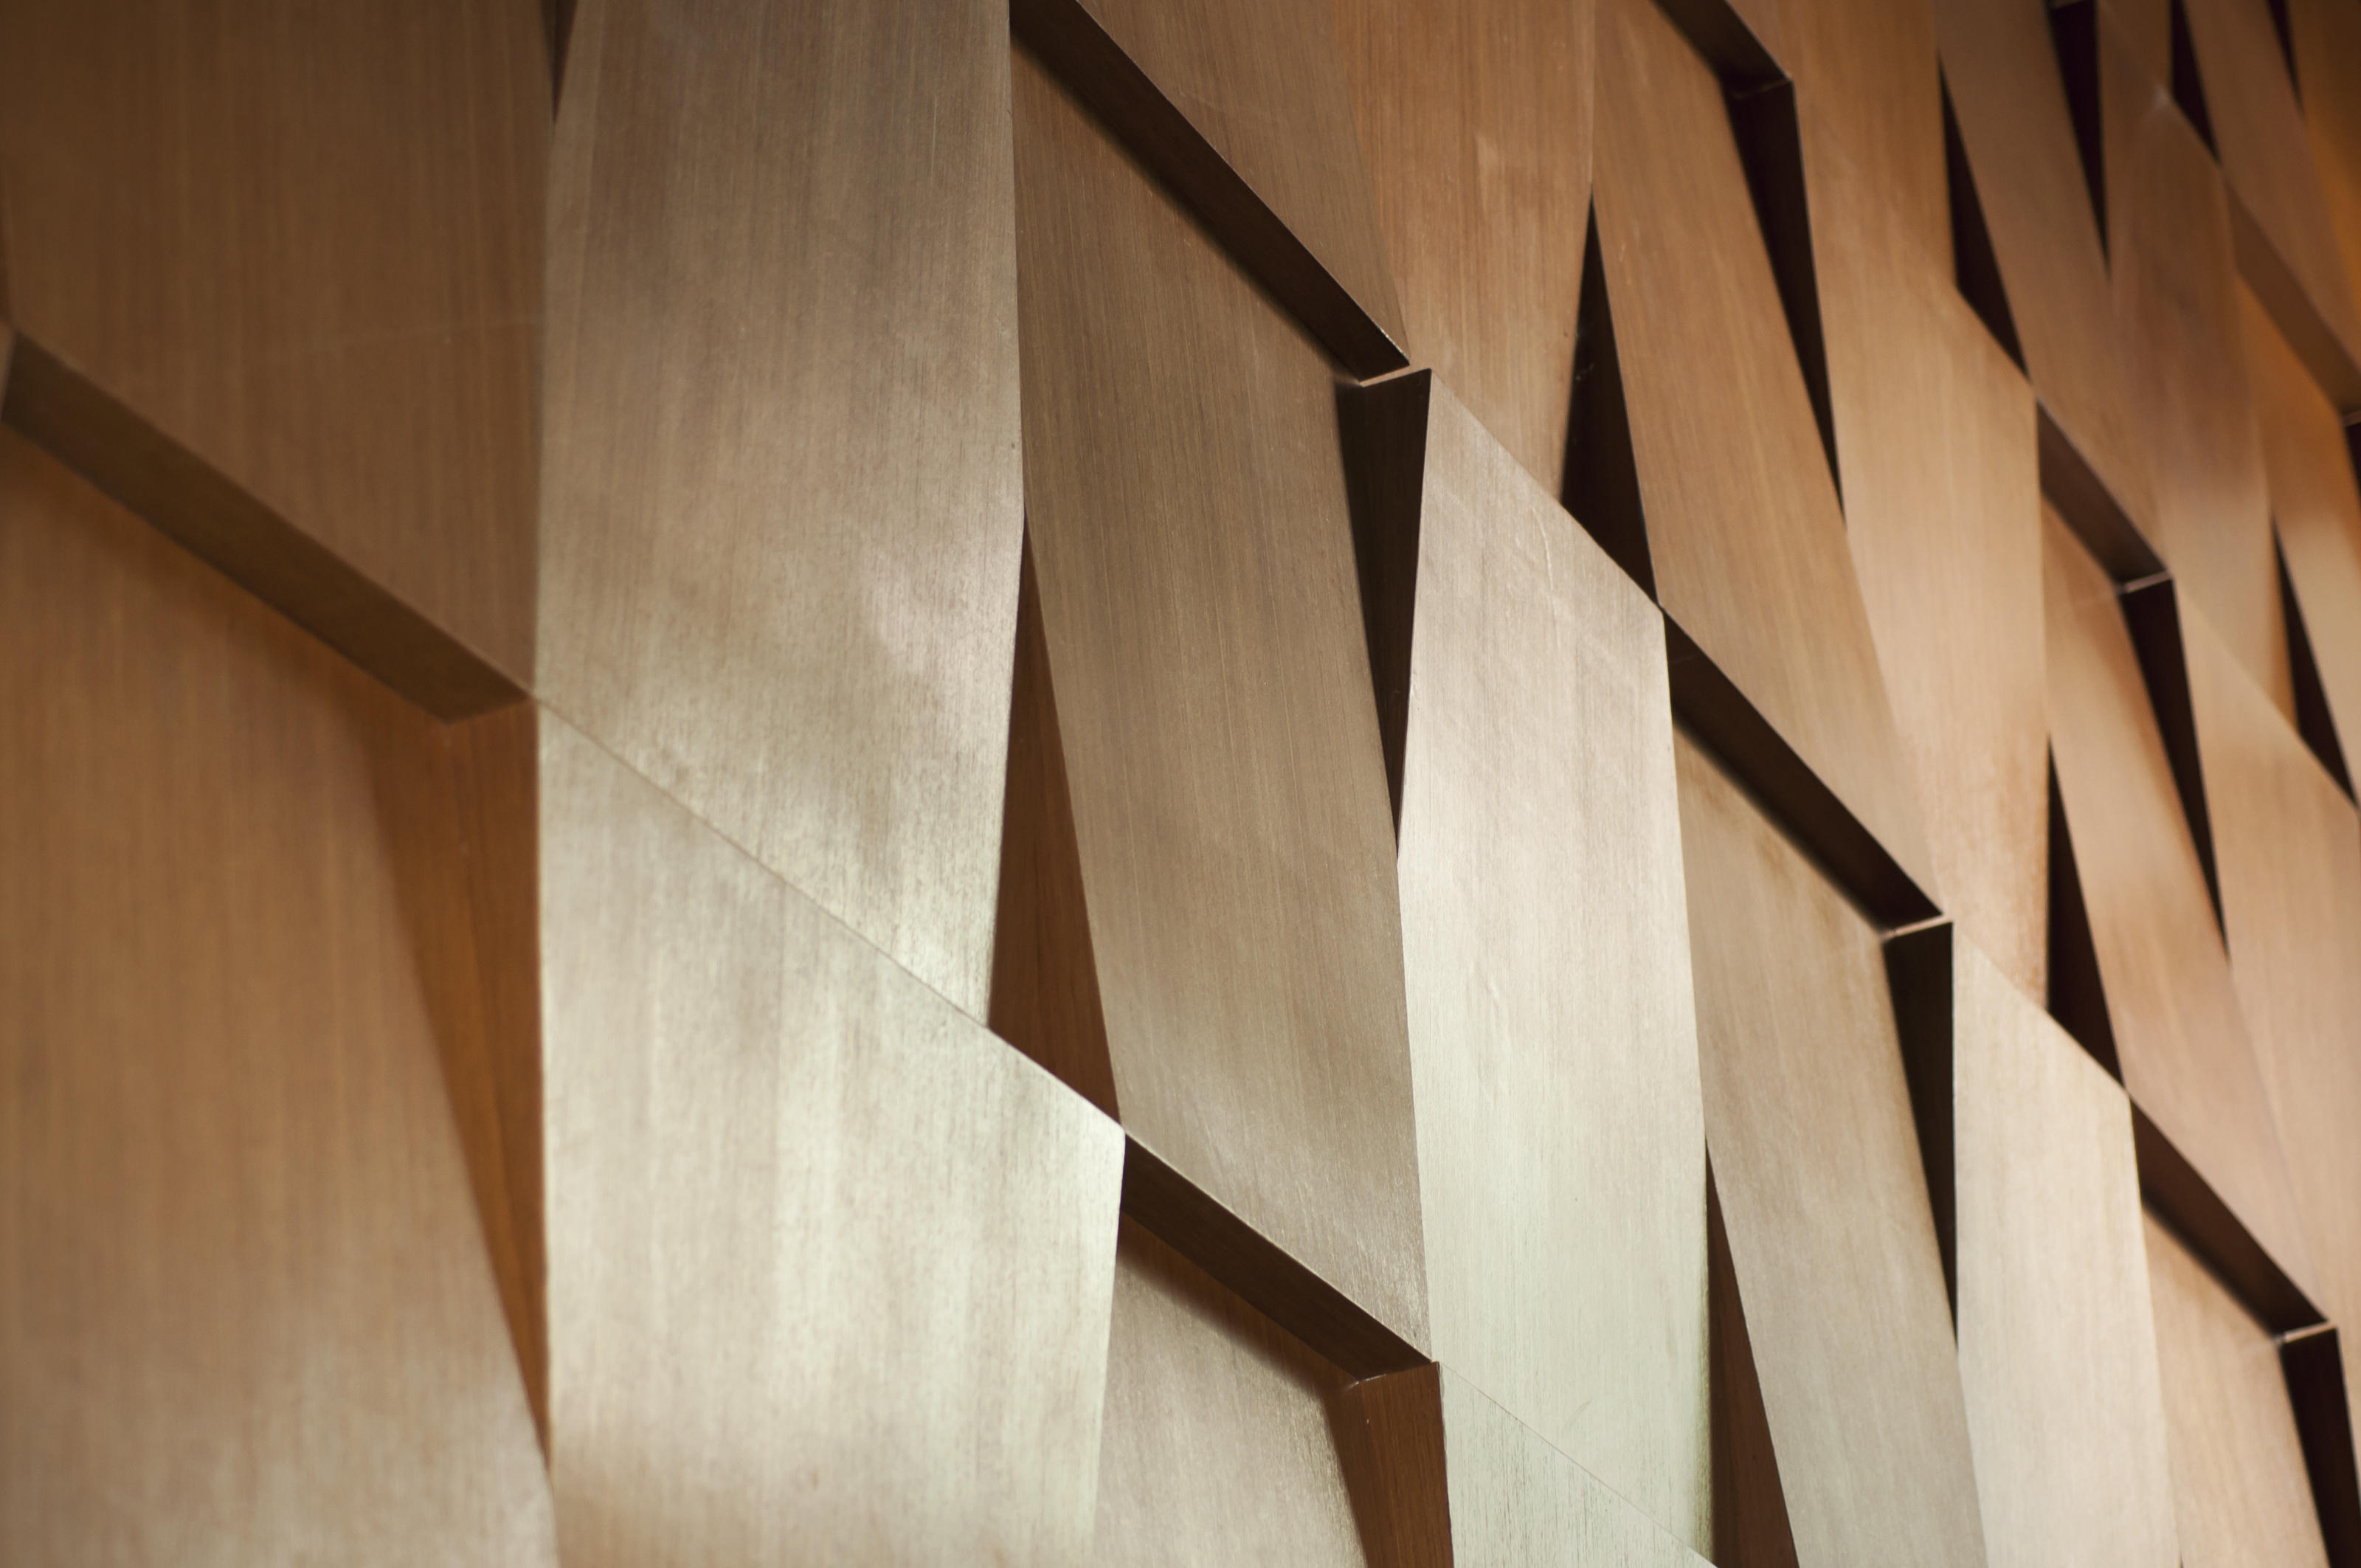 Wood wall geometry decoration background